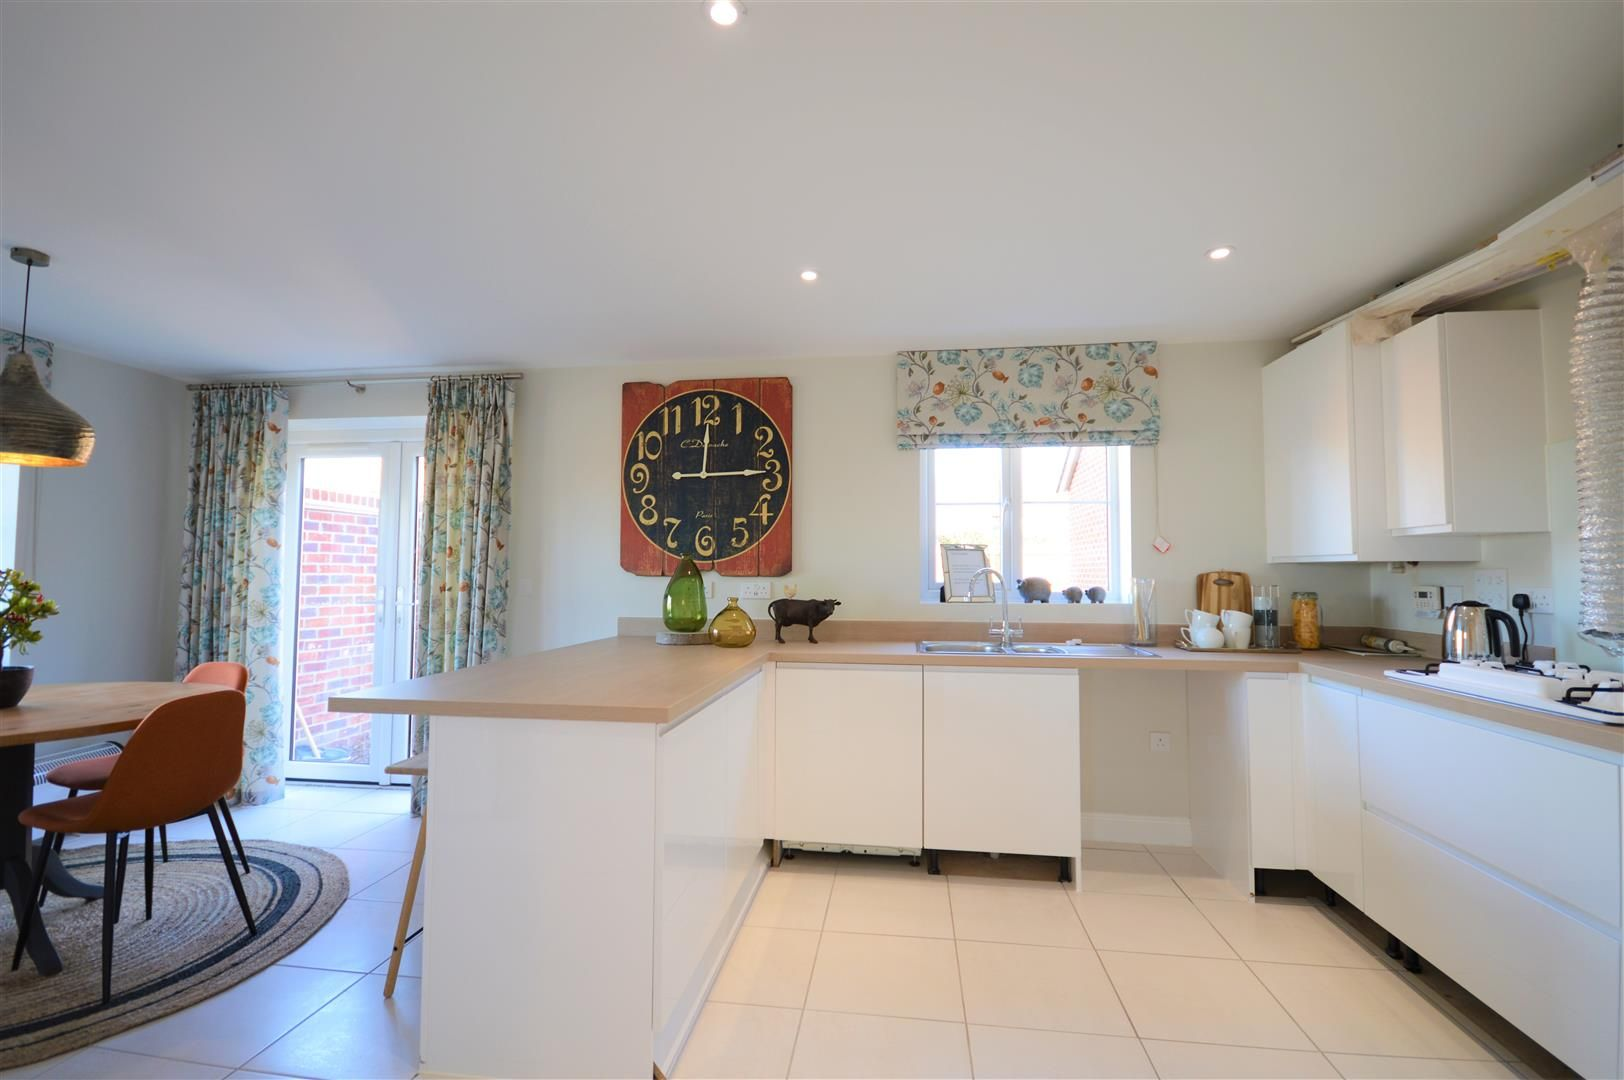 3 bed detached for sale in Kingstone 4